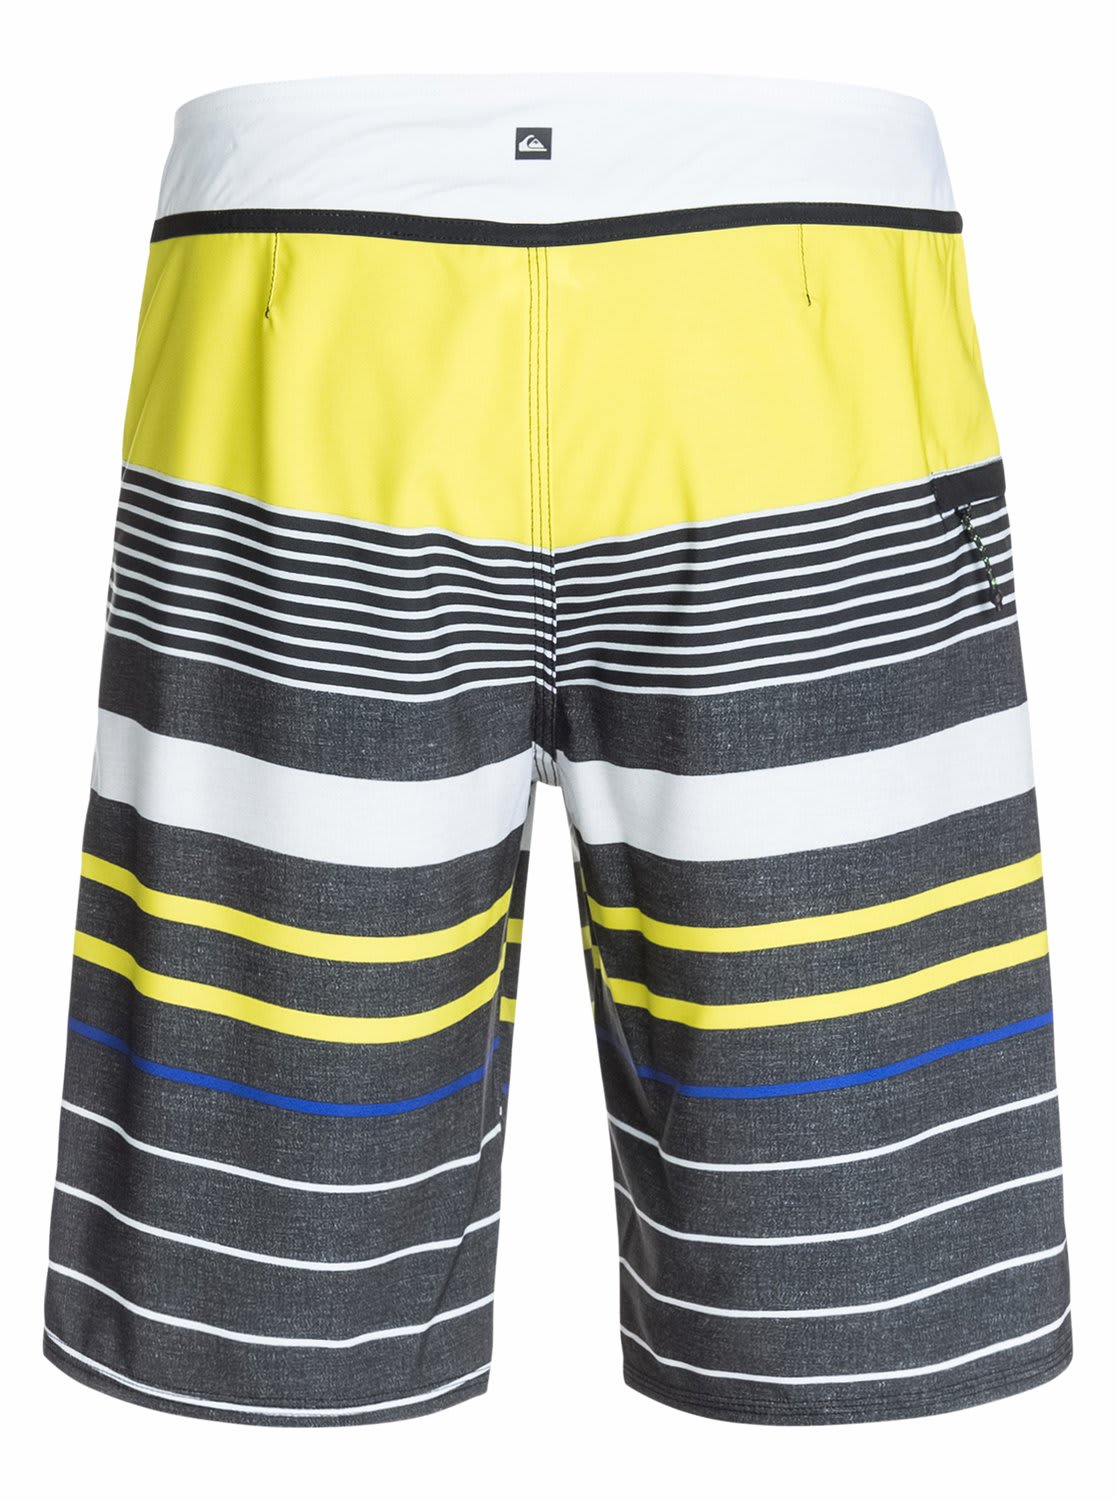 Board shorts may have been named after board sports like surfing and stand-up paddleboarding, but that doesn't make them any less effective against swass.